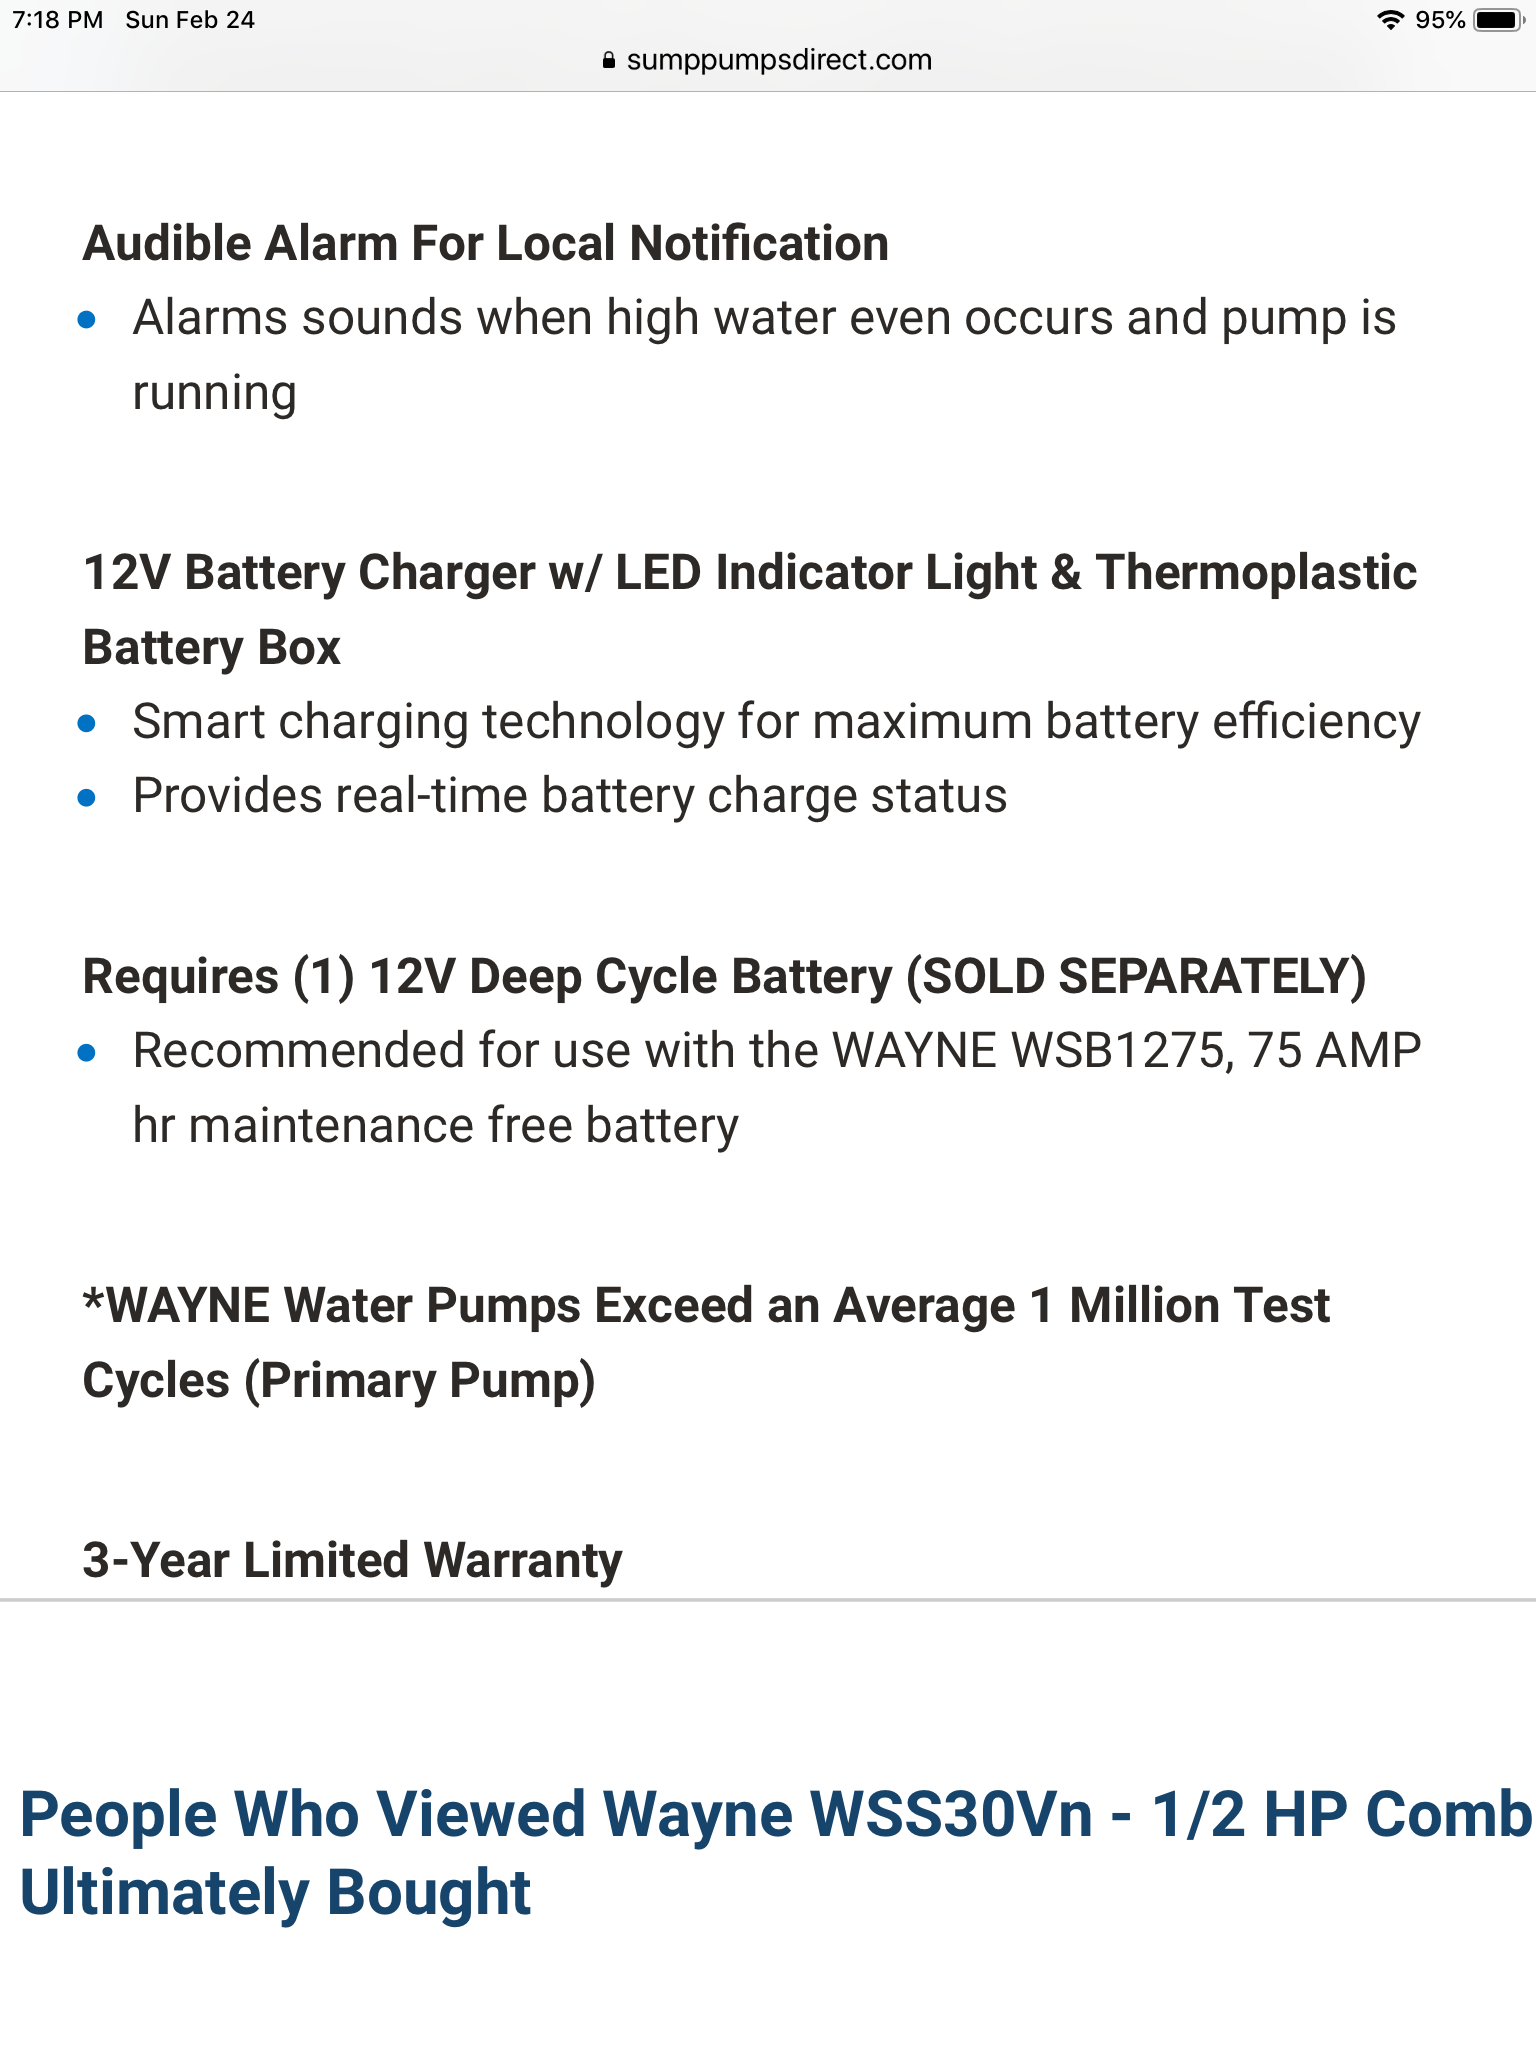 Combination Sump Pump vs 2 Dedicated Systems-cc9134c0-b77e-4e8d-9de5-46e3e8022fc5.png